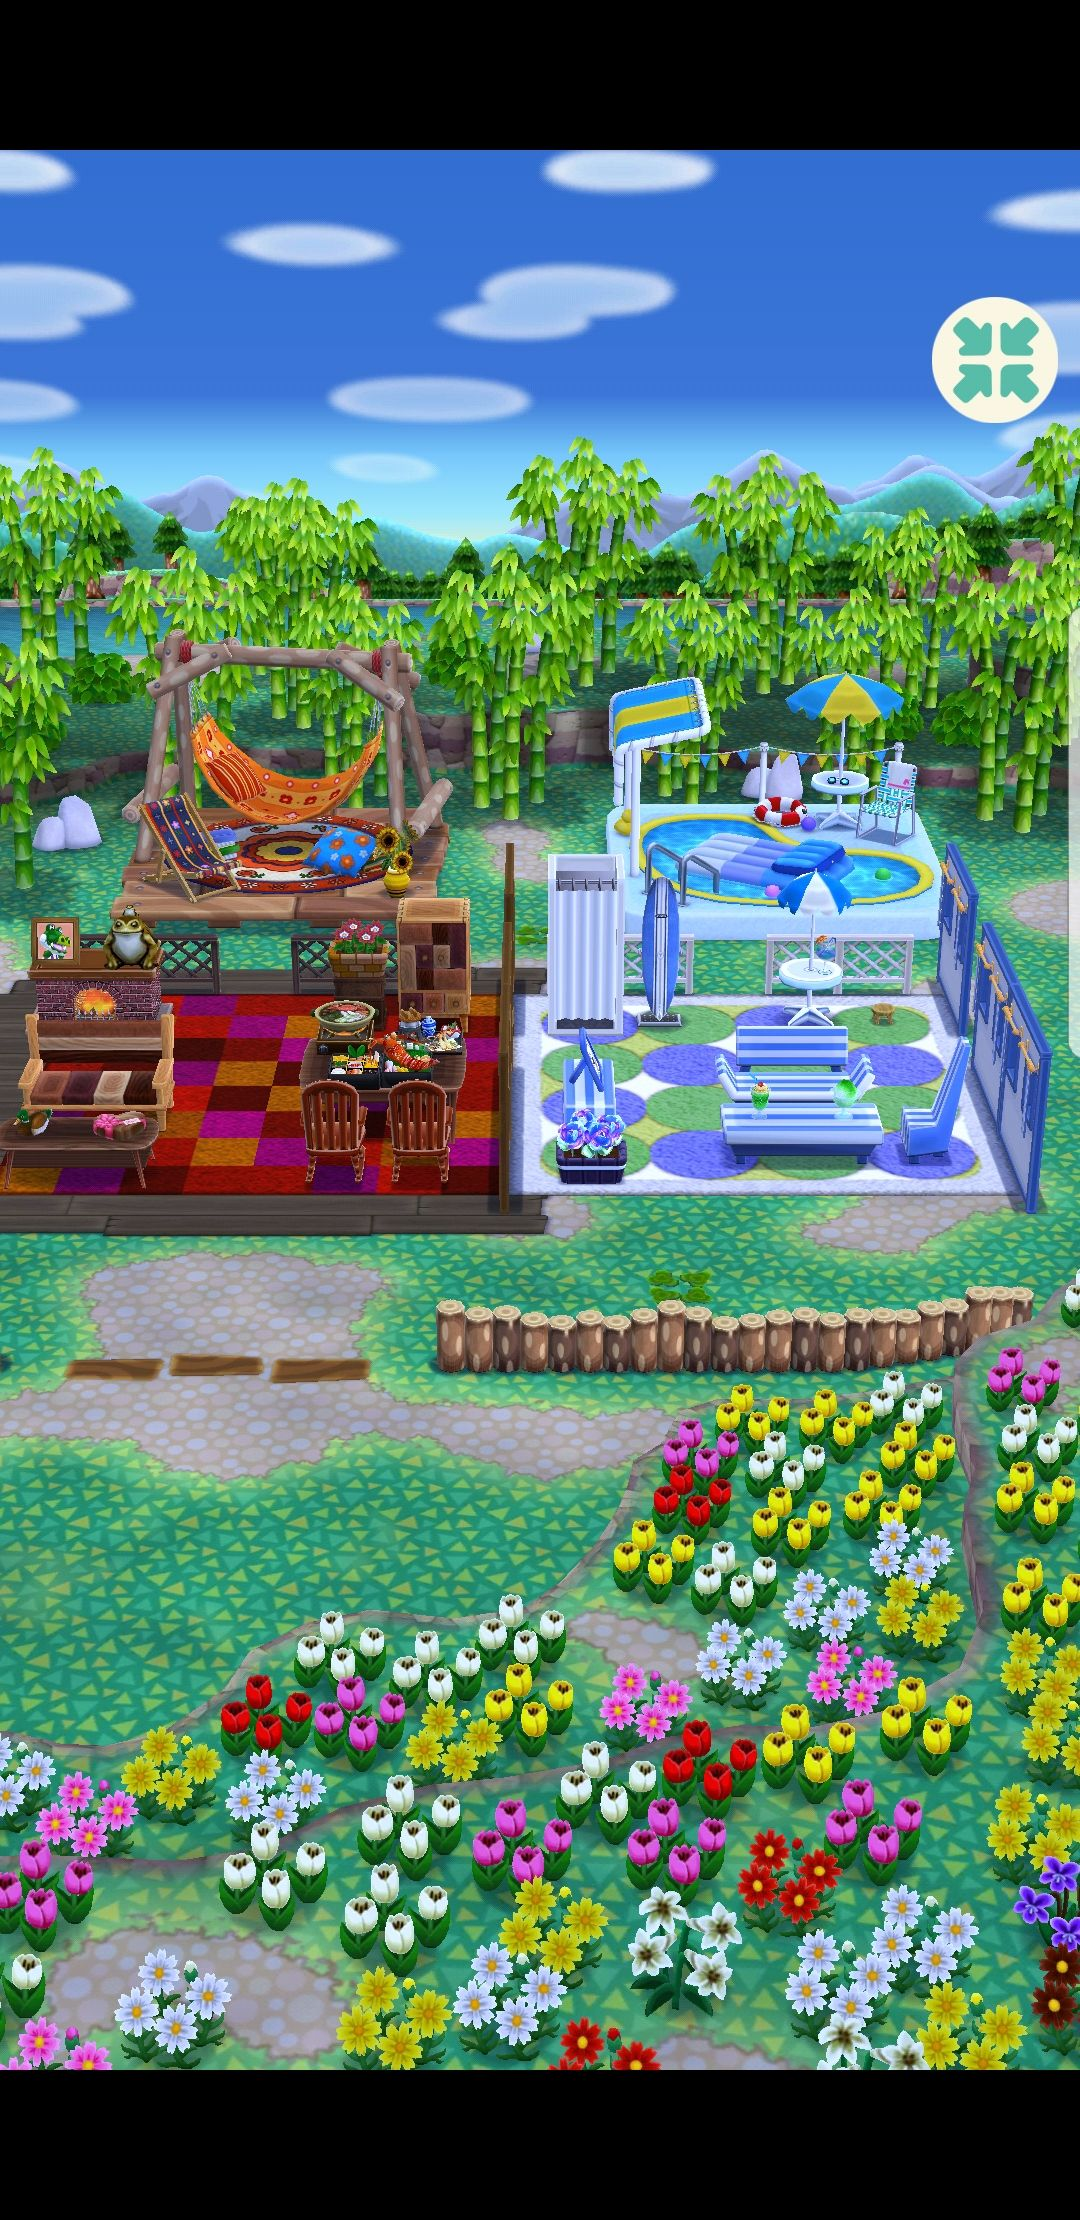 16+ Animal crossing update today ideas in 2021